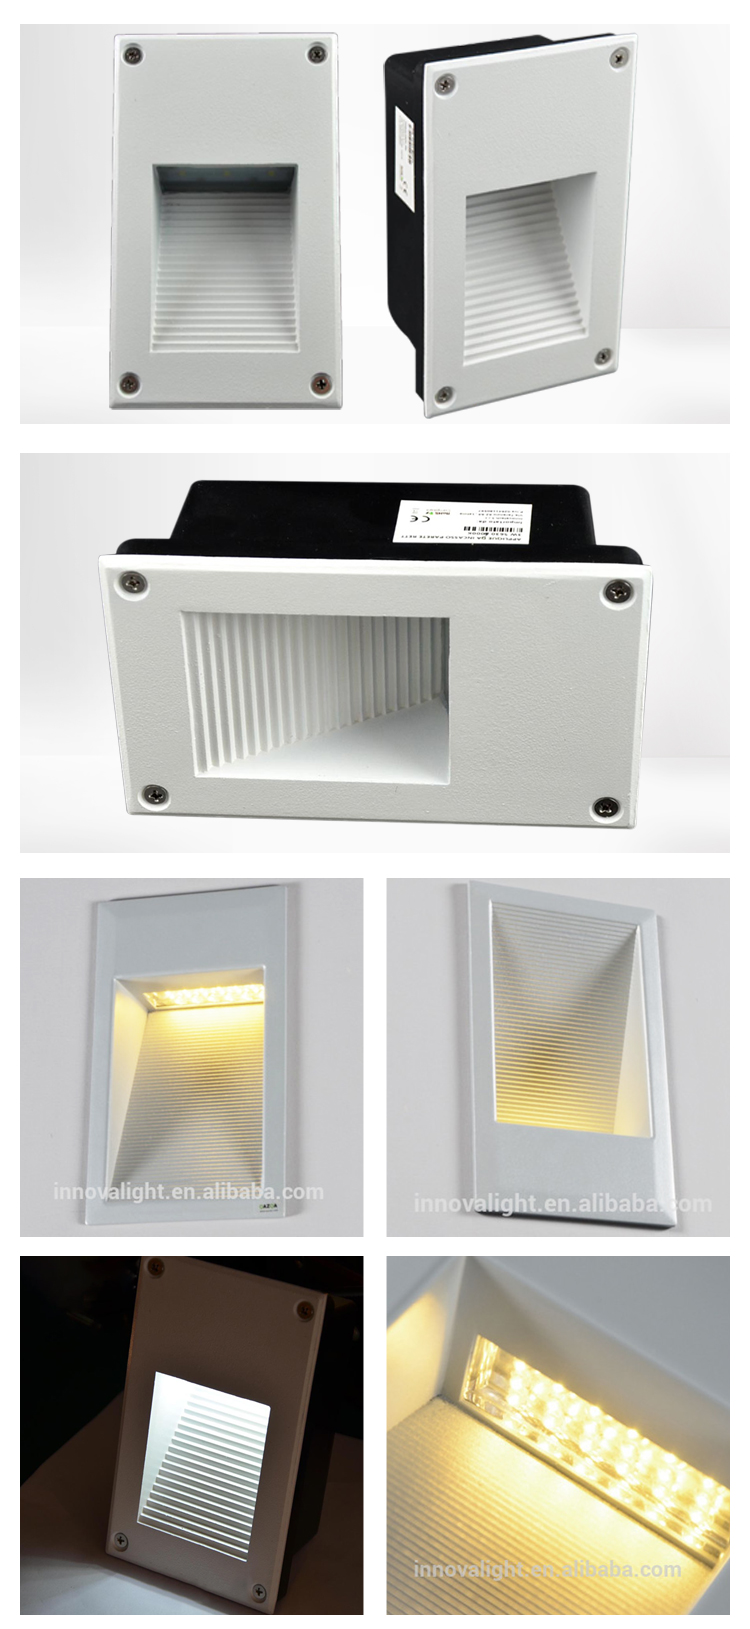 INNOVALIGHT 6W IP65 Recessed Outdoor wall light LED Decoration Light